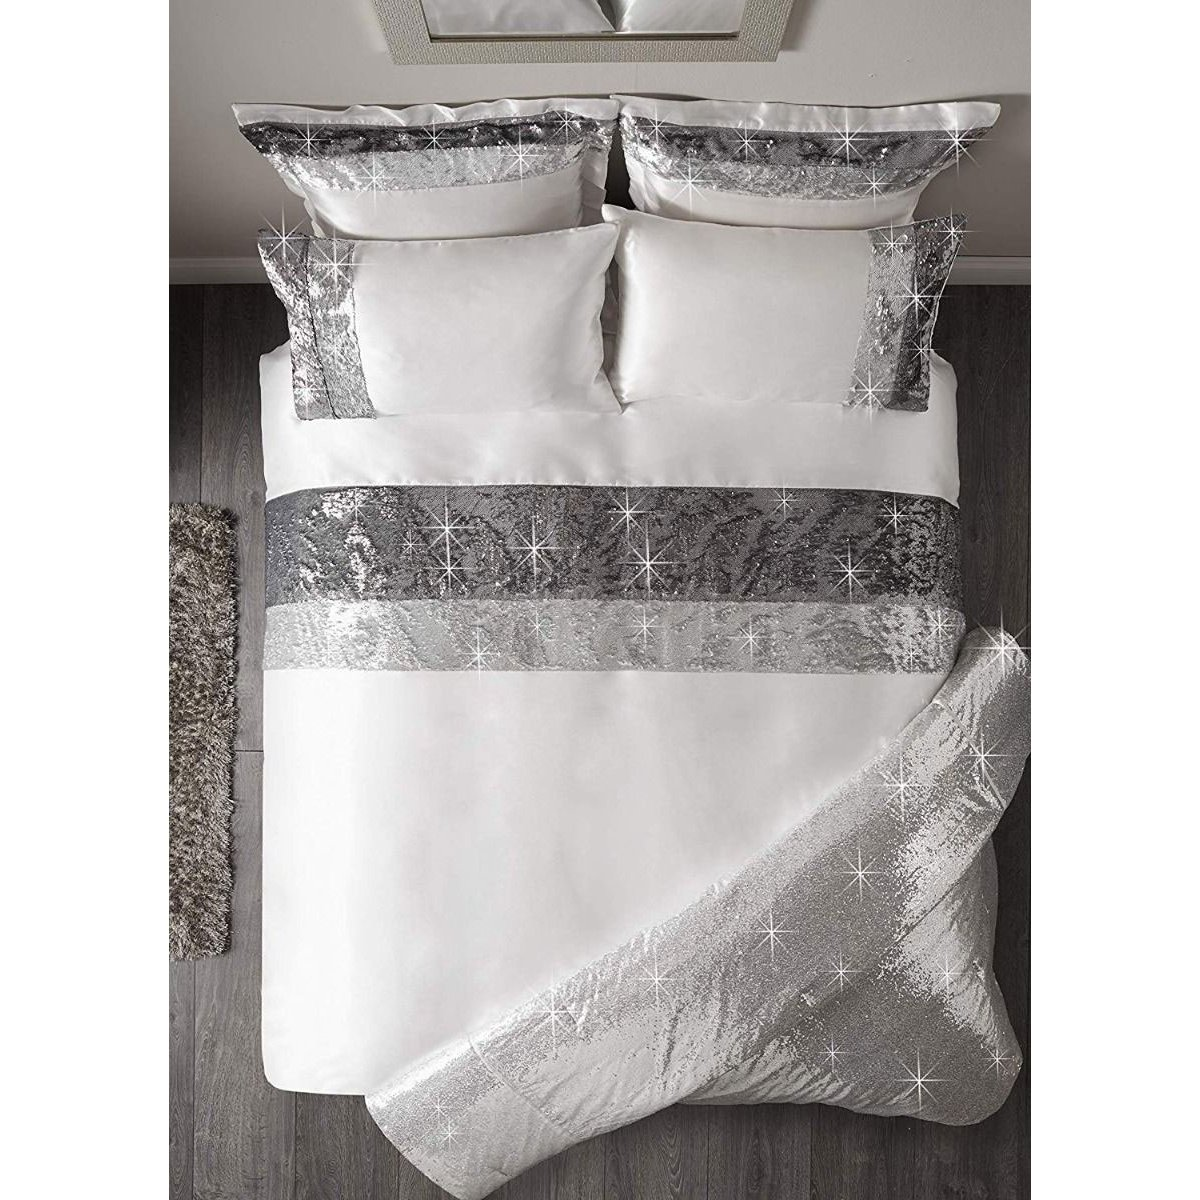 Caprice Adriana Bedding - Reversible Duvet Cover and Pillowcase Set